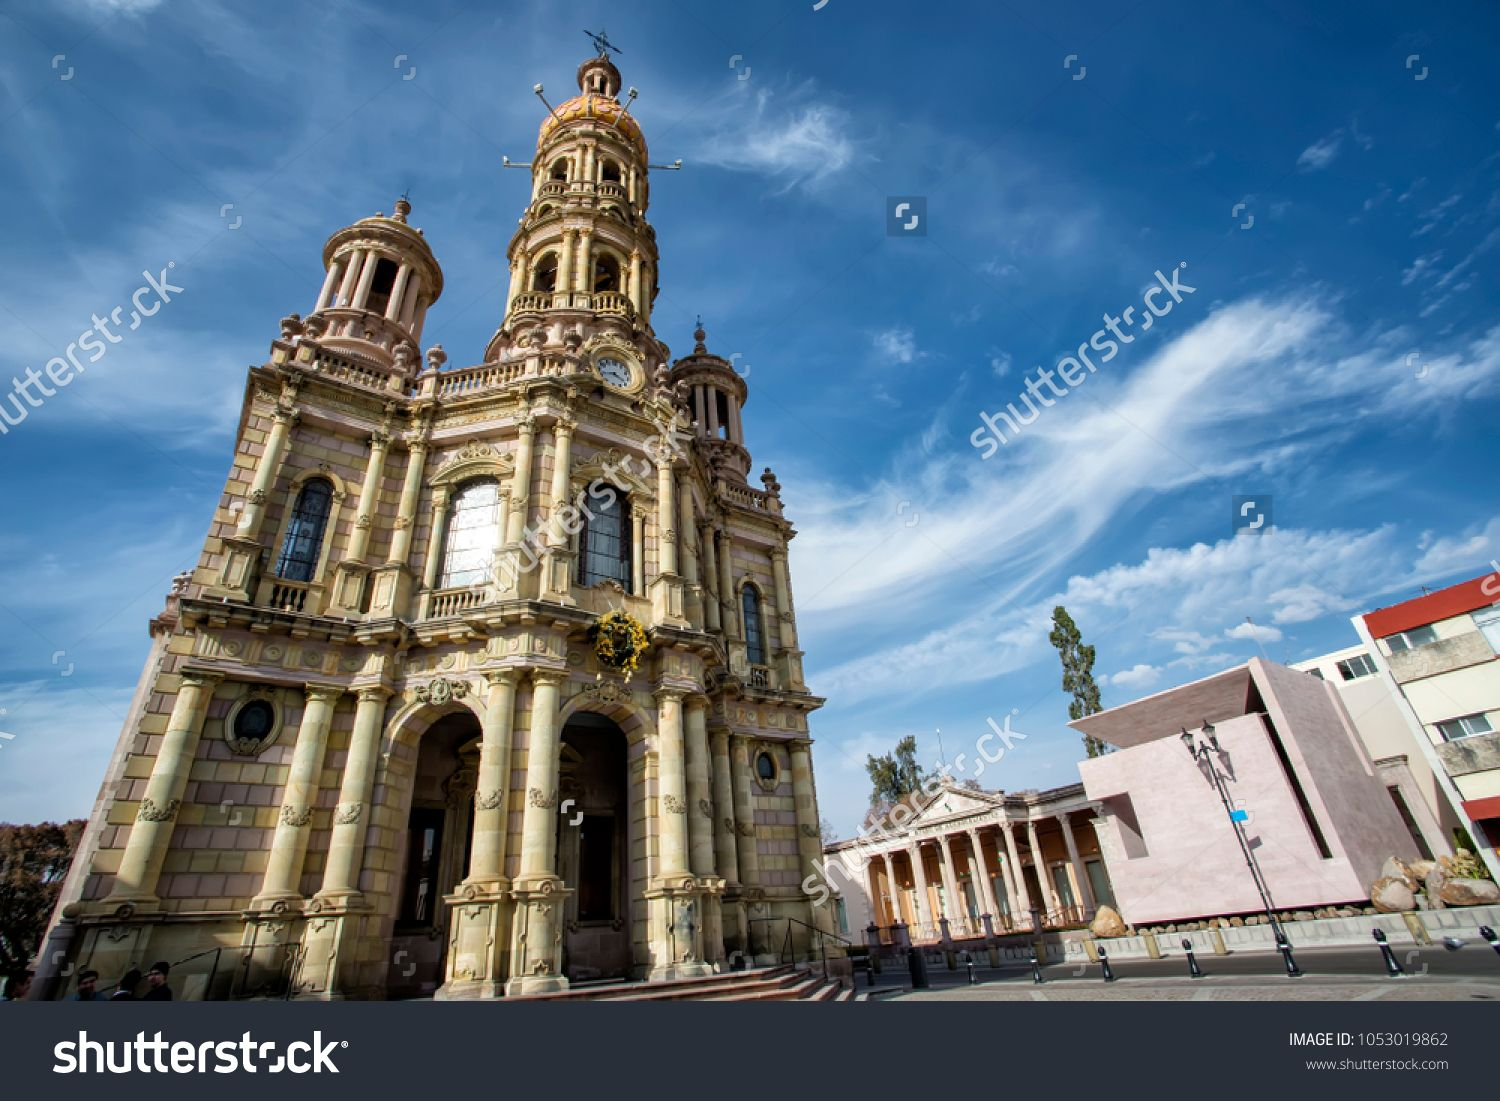 Aguascalientes is the capital of the state of Aguascalientes and is its most populous city. #Sponsored , #Sponsored, #capital#Aguascalientes#state#city